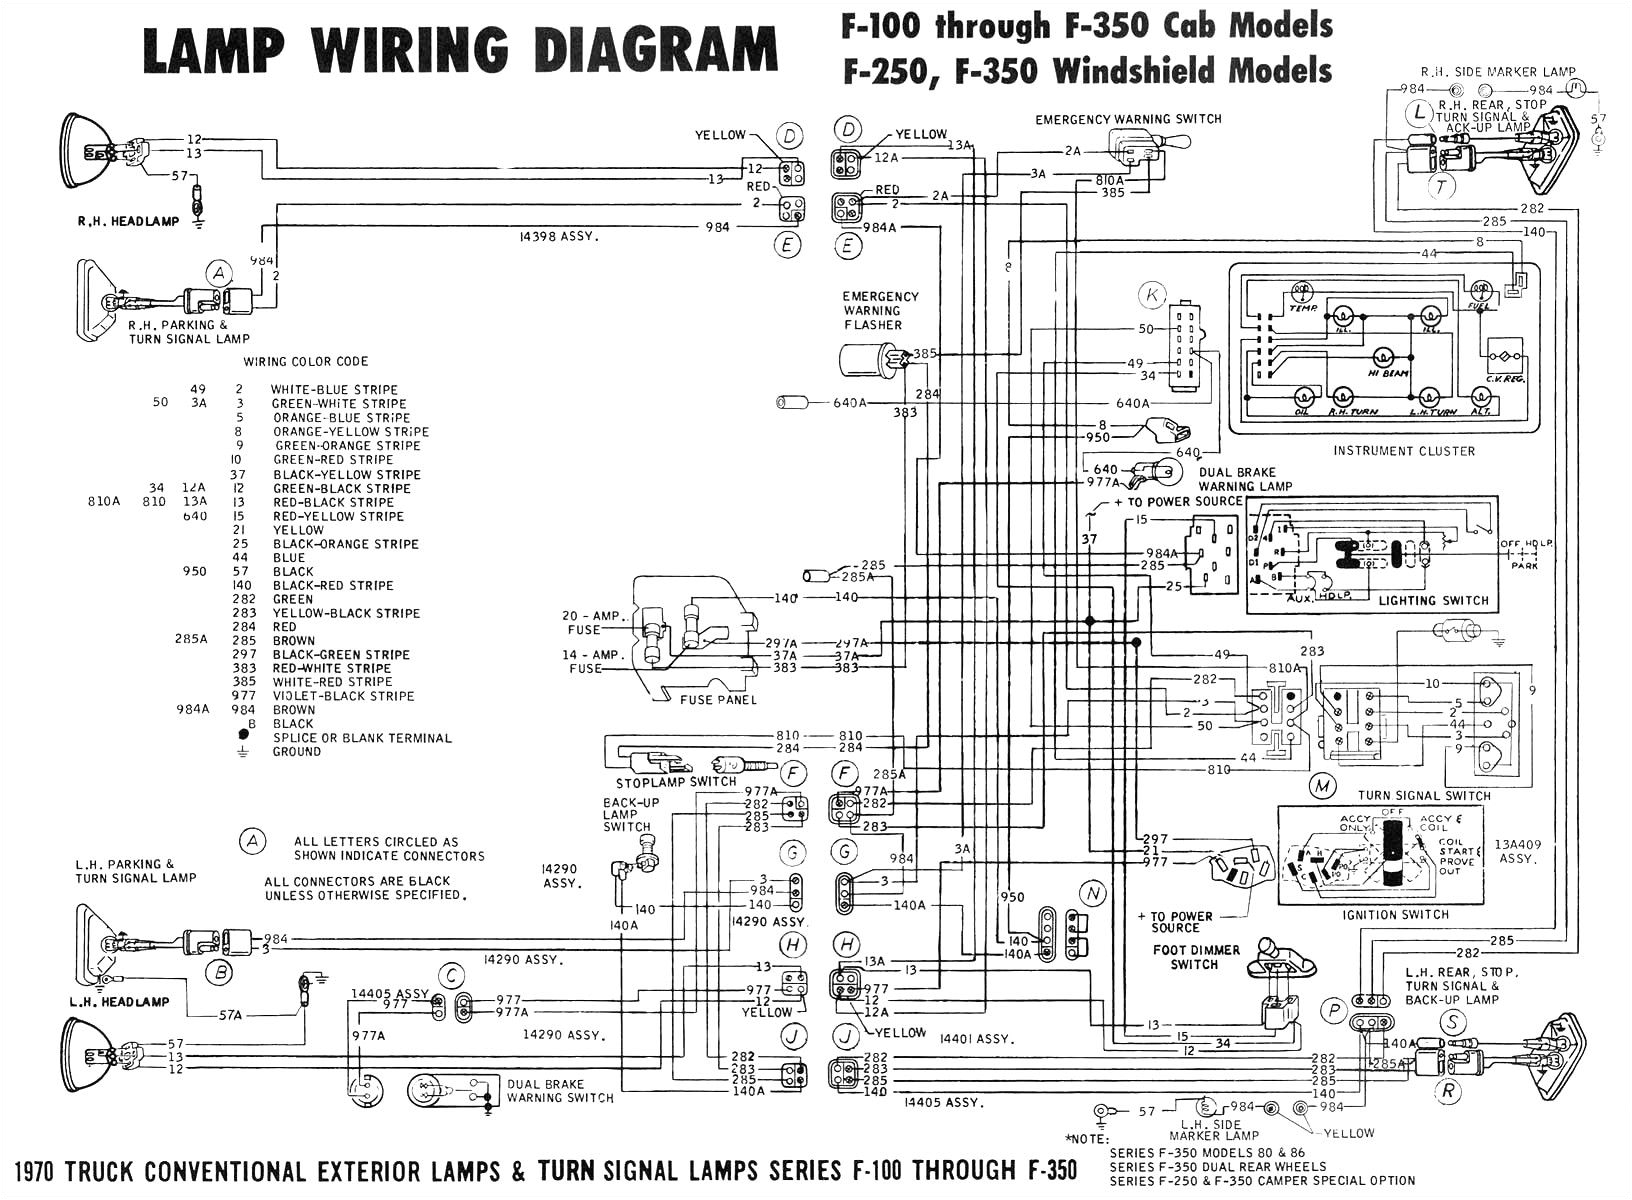 2003 ford Explorer Trailer Wiring Diagram ford F250 Wiring Diagram for Trailer Light Electrical